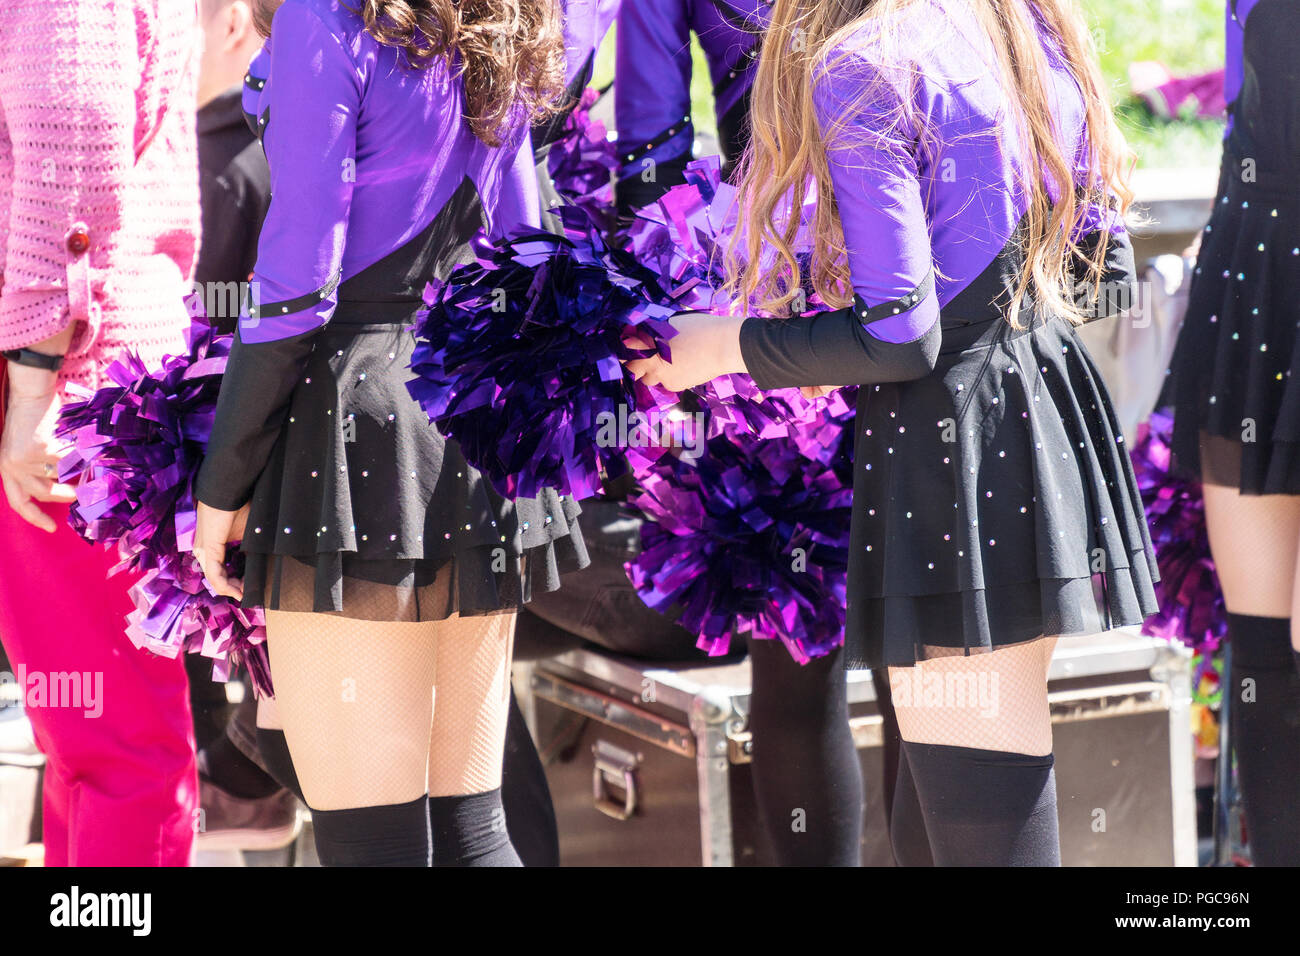 Cheerleaders in purple suits - Stock Image